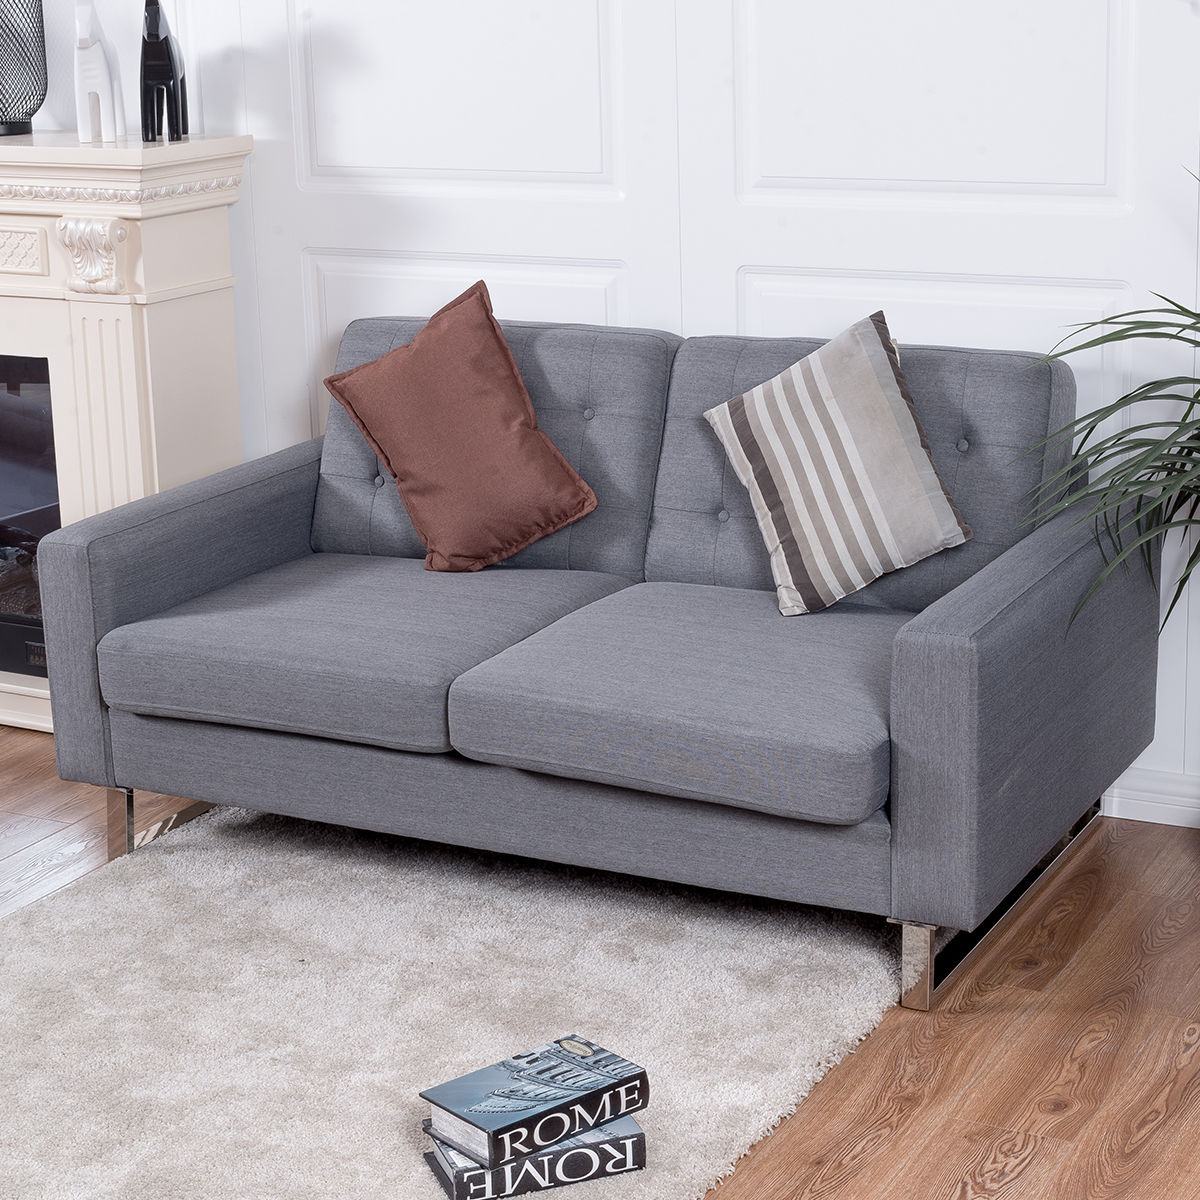 Giantex 2 Seat Sofa Couch Home fice Modern Loveseat